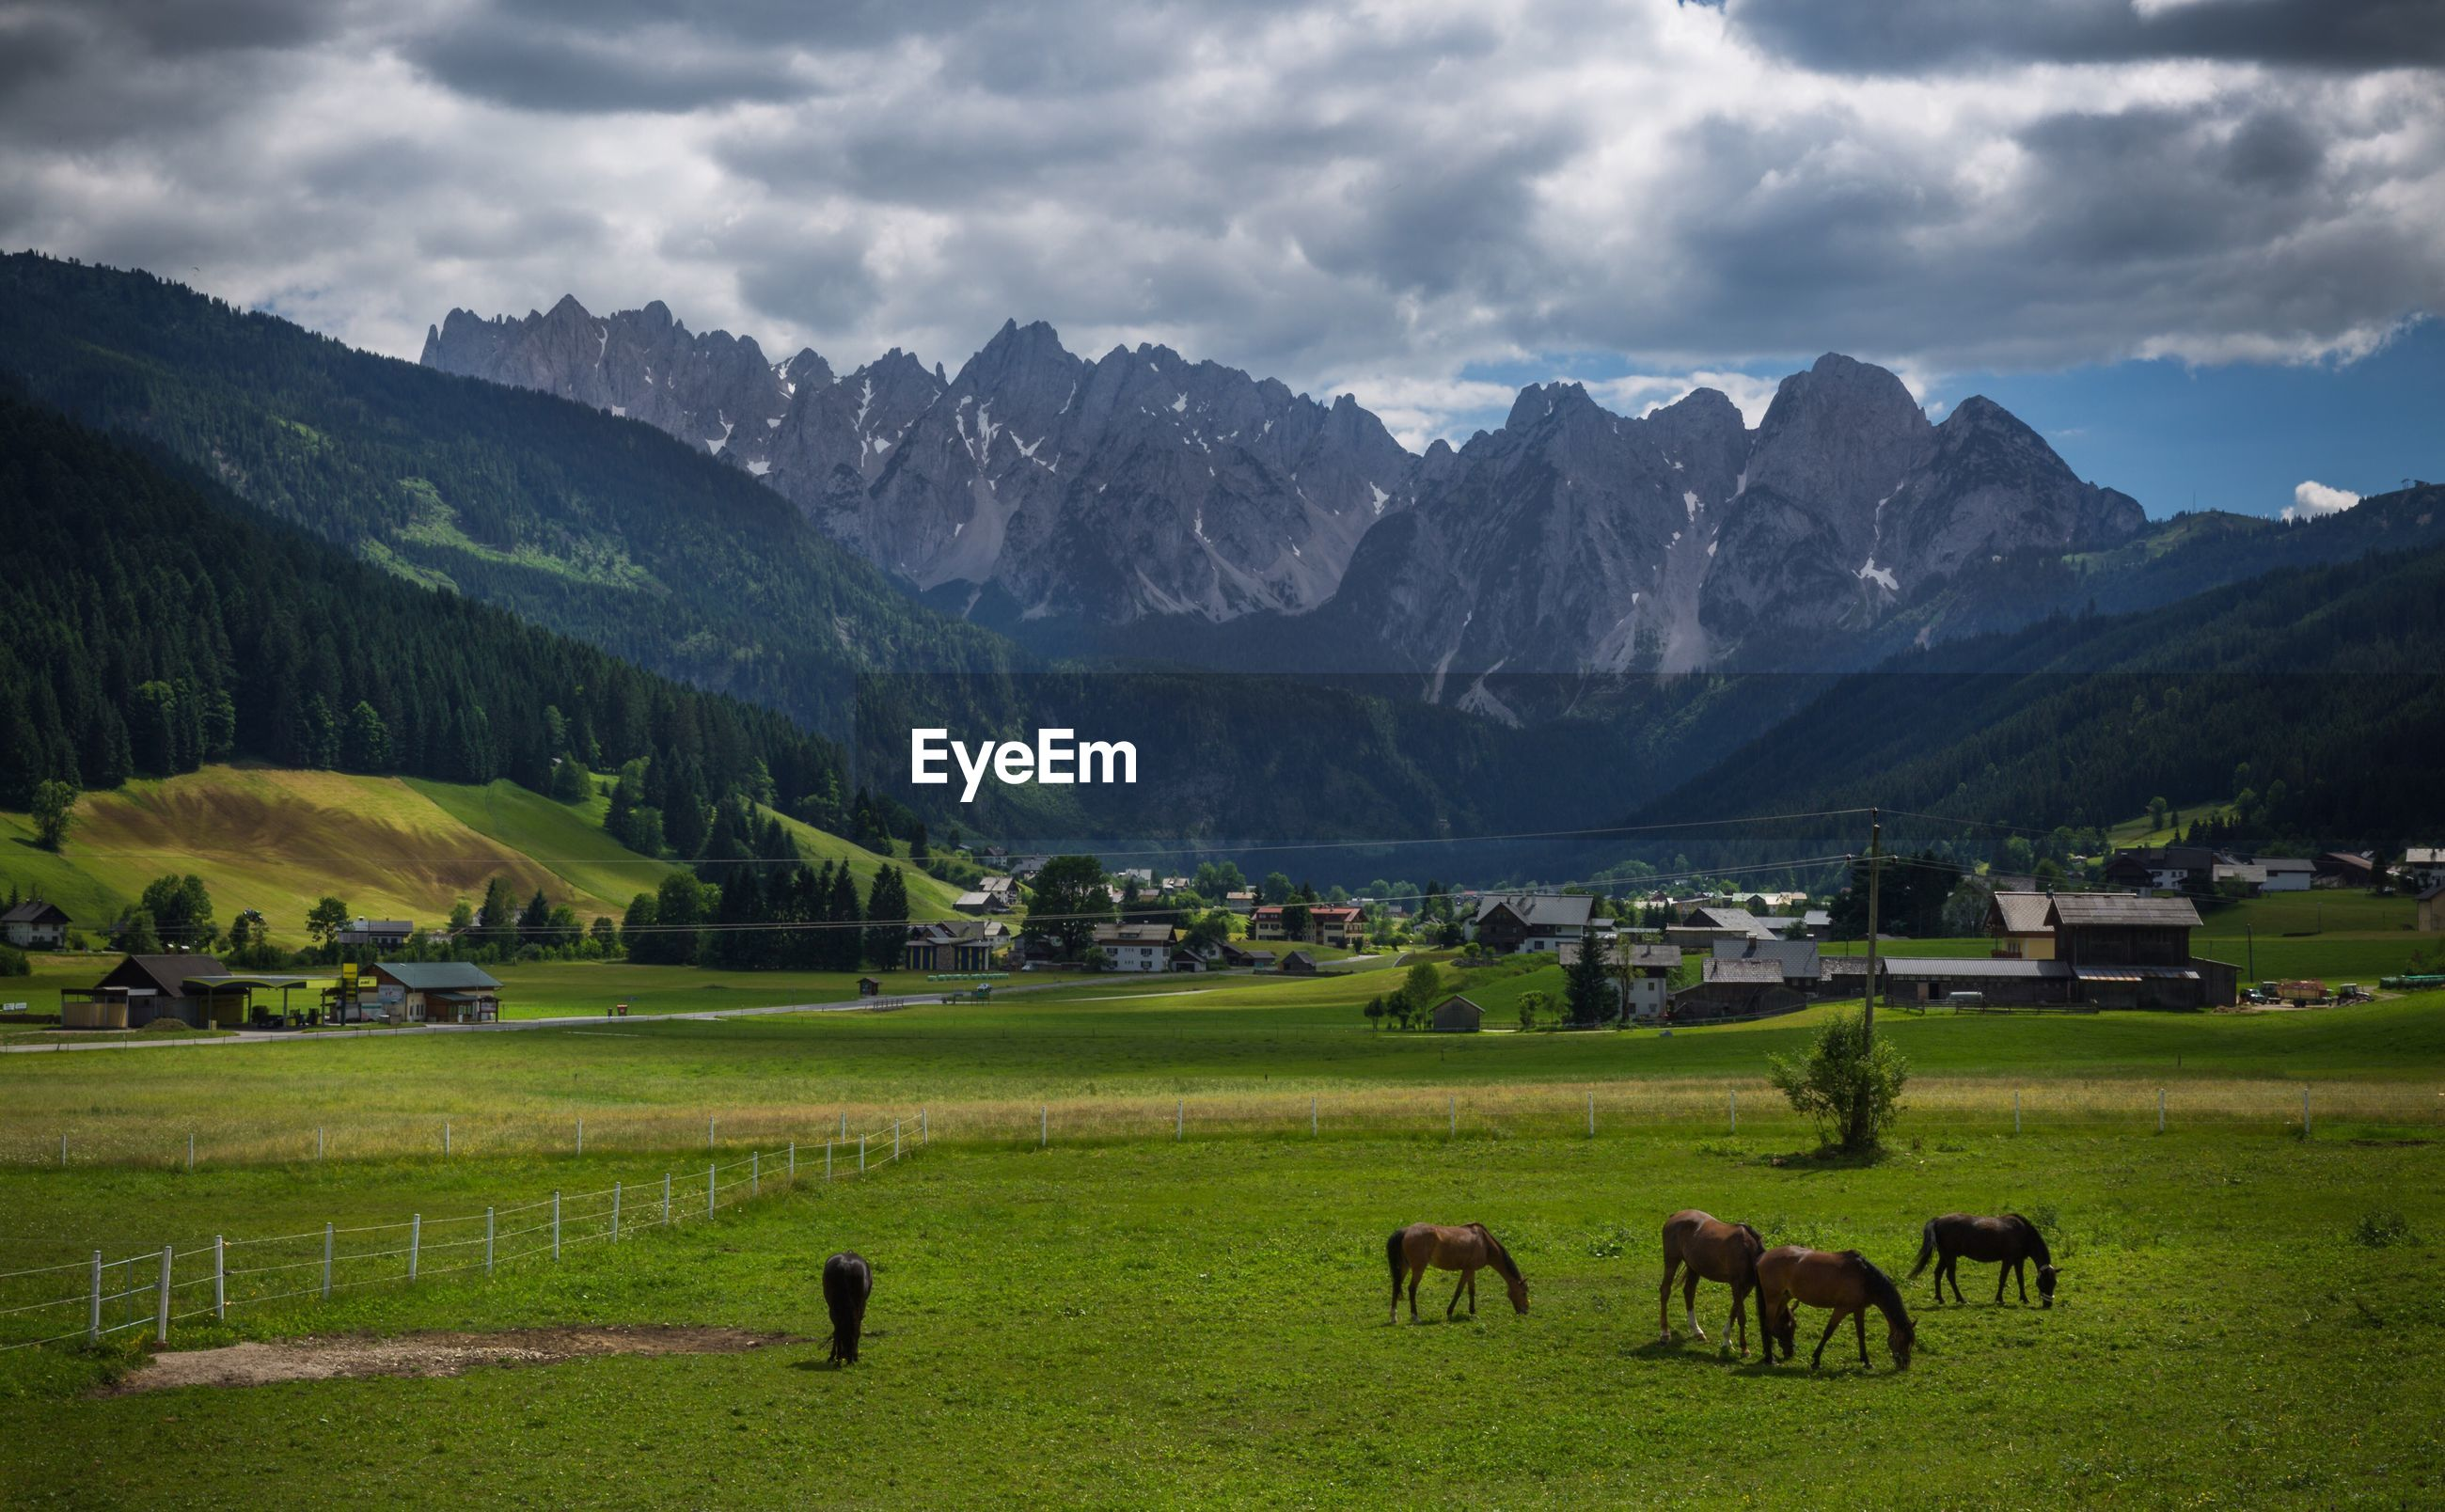 Horses grazing on field against mountains